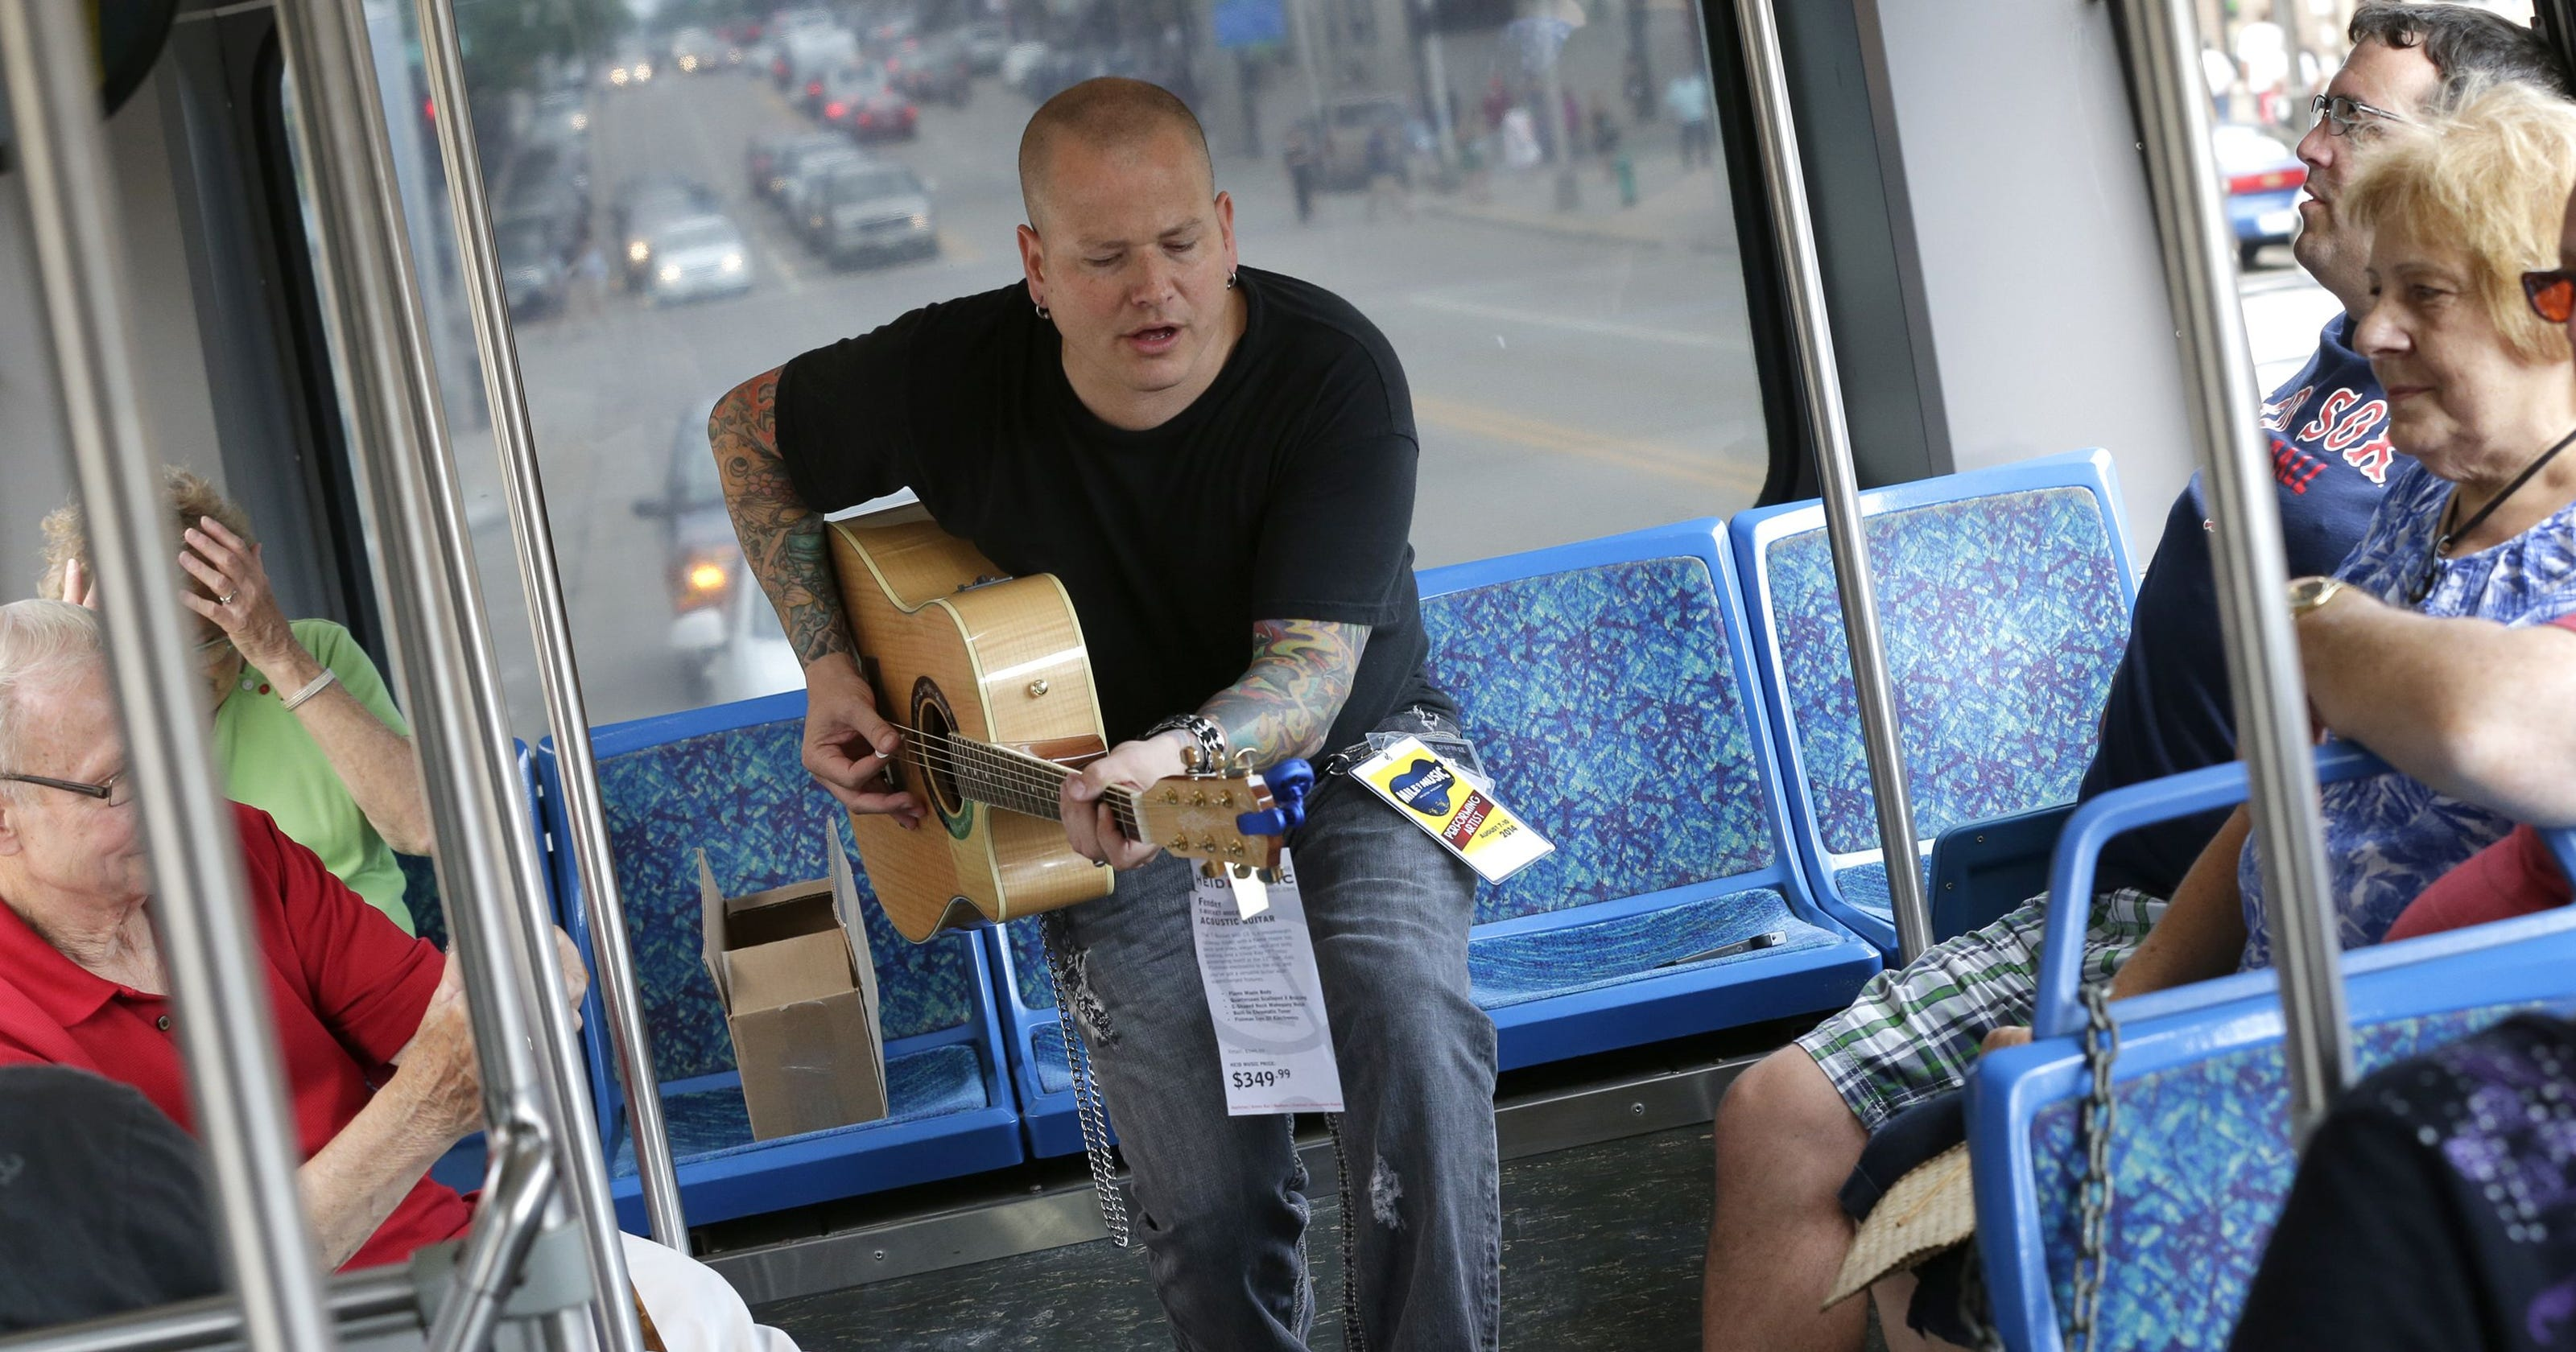 Guitar on bus